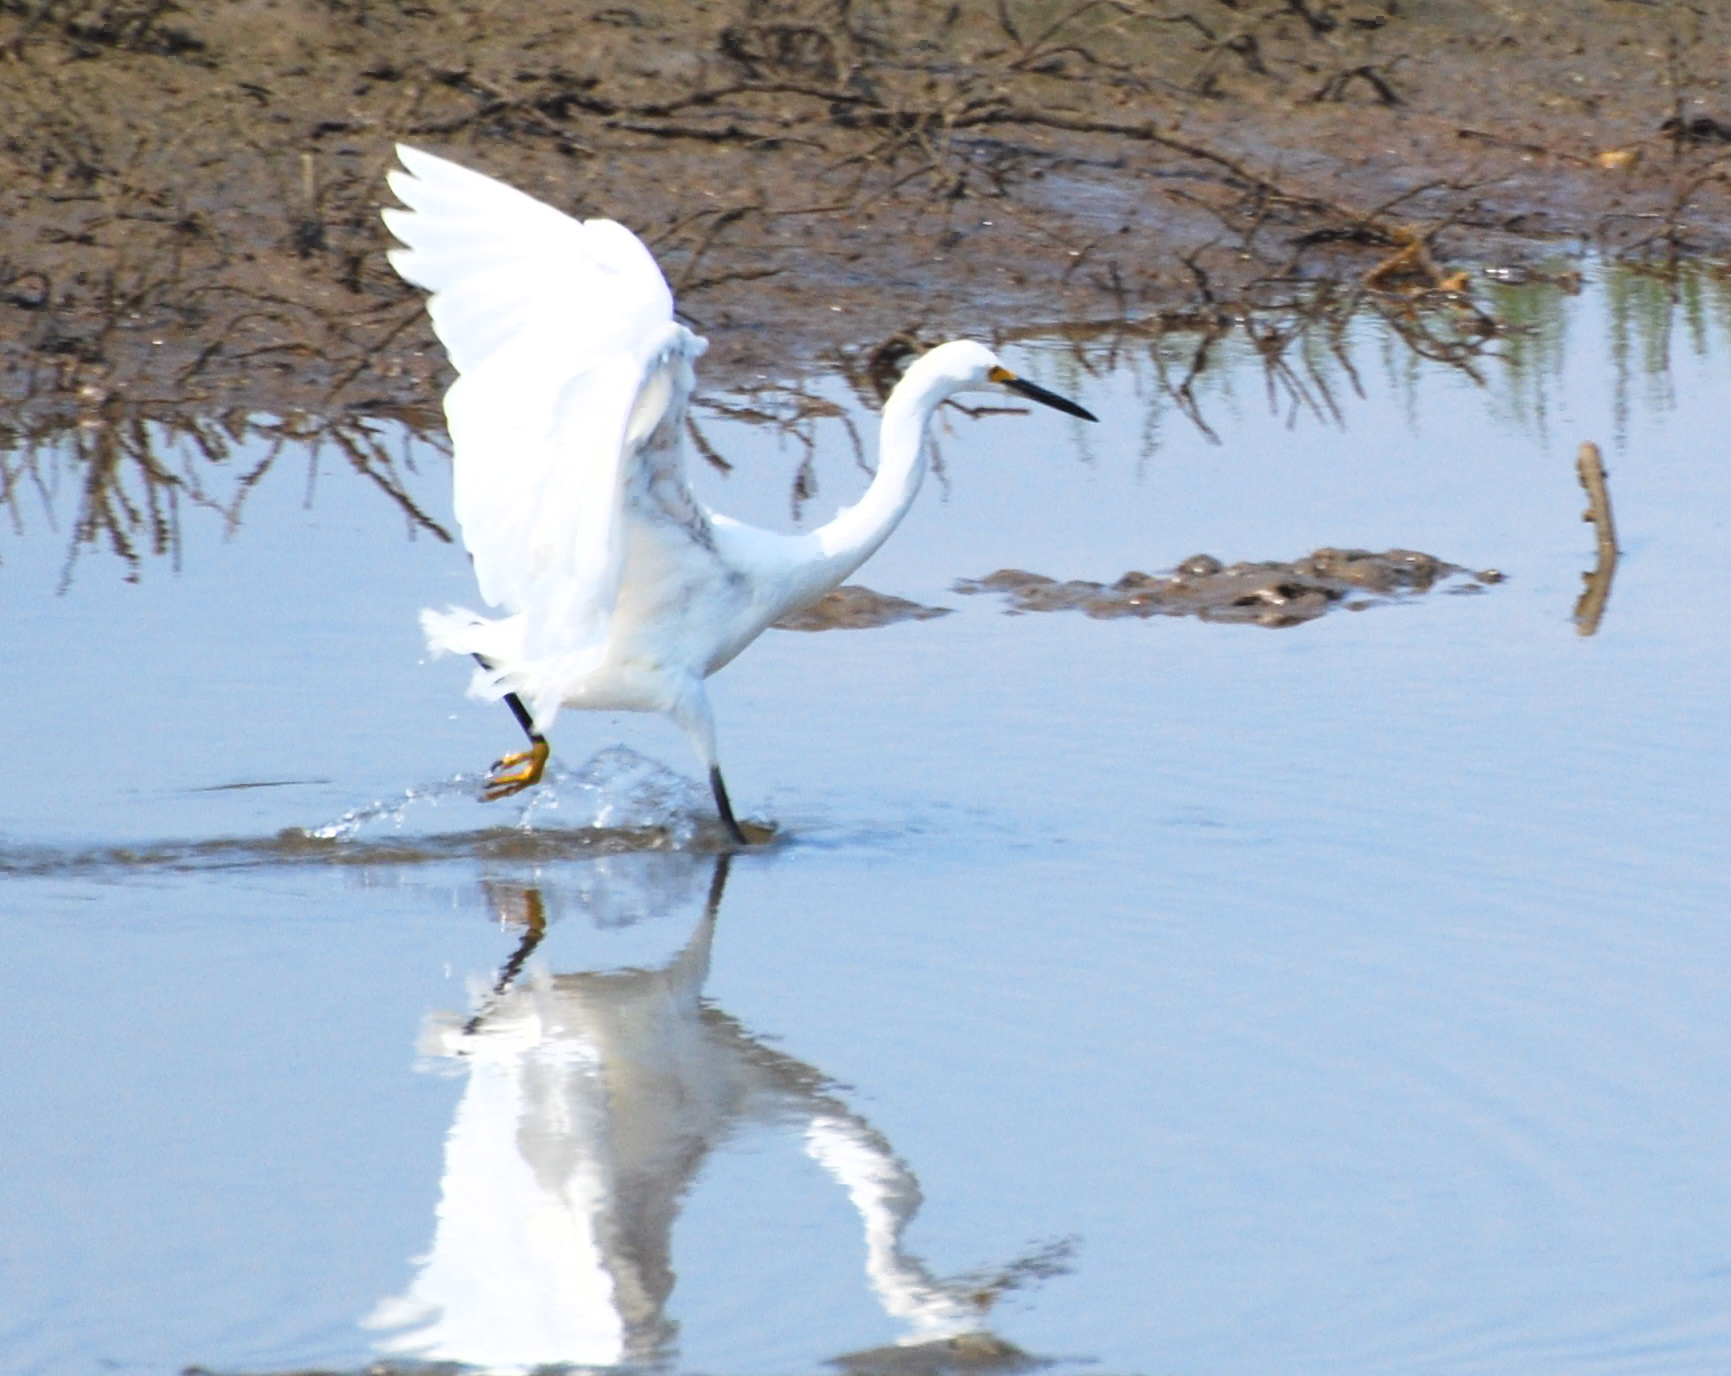 Snowy Egret on the run171325.tmp/mysterybird.JPG